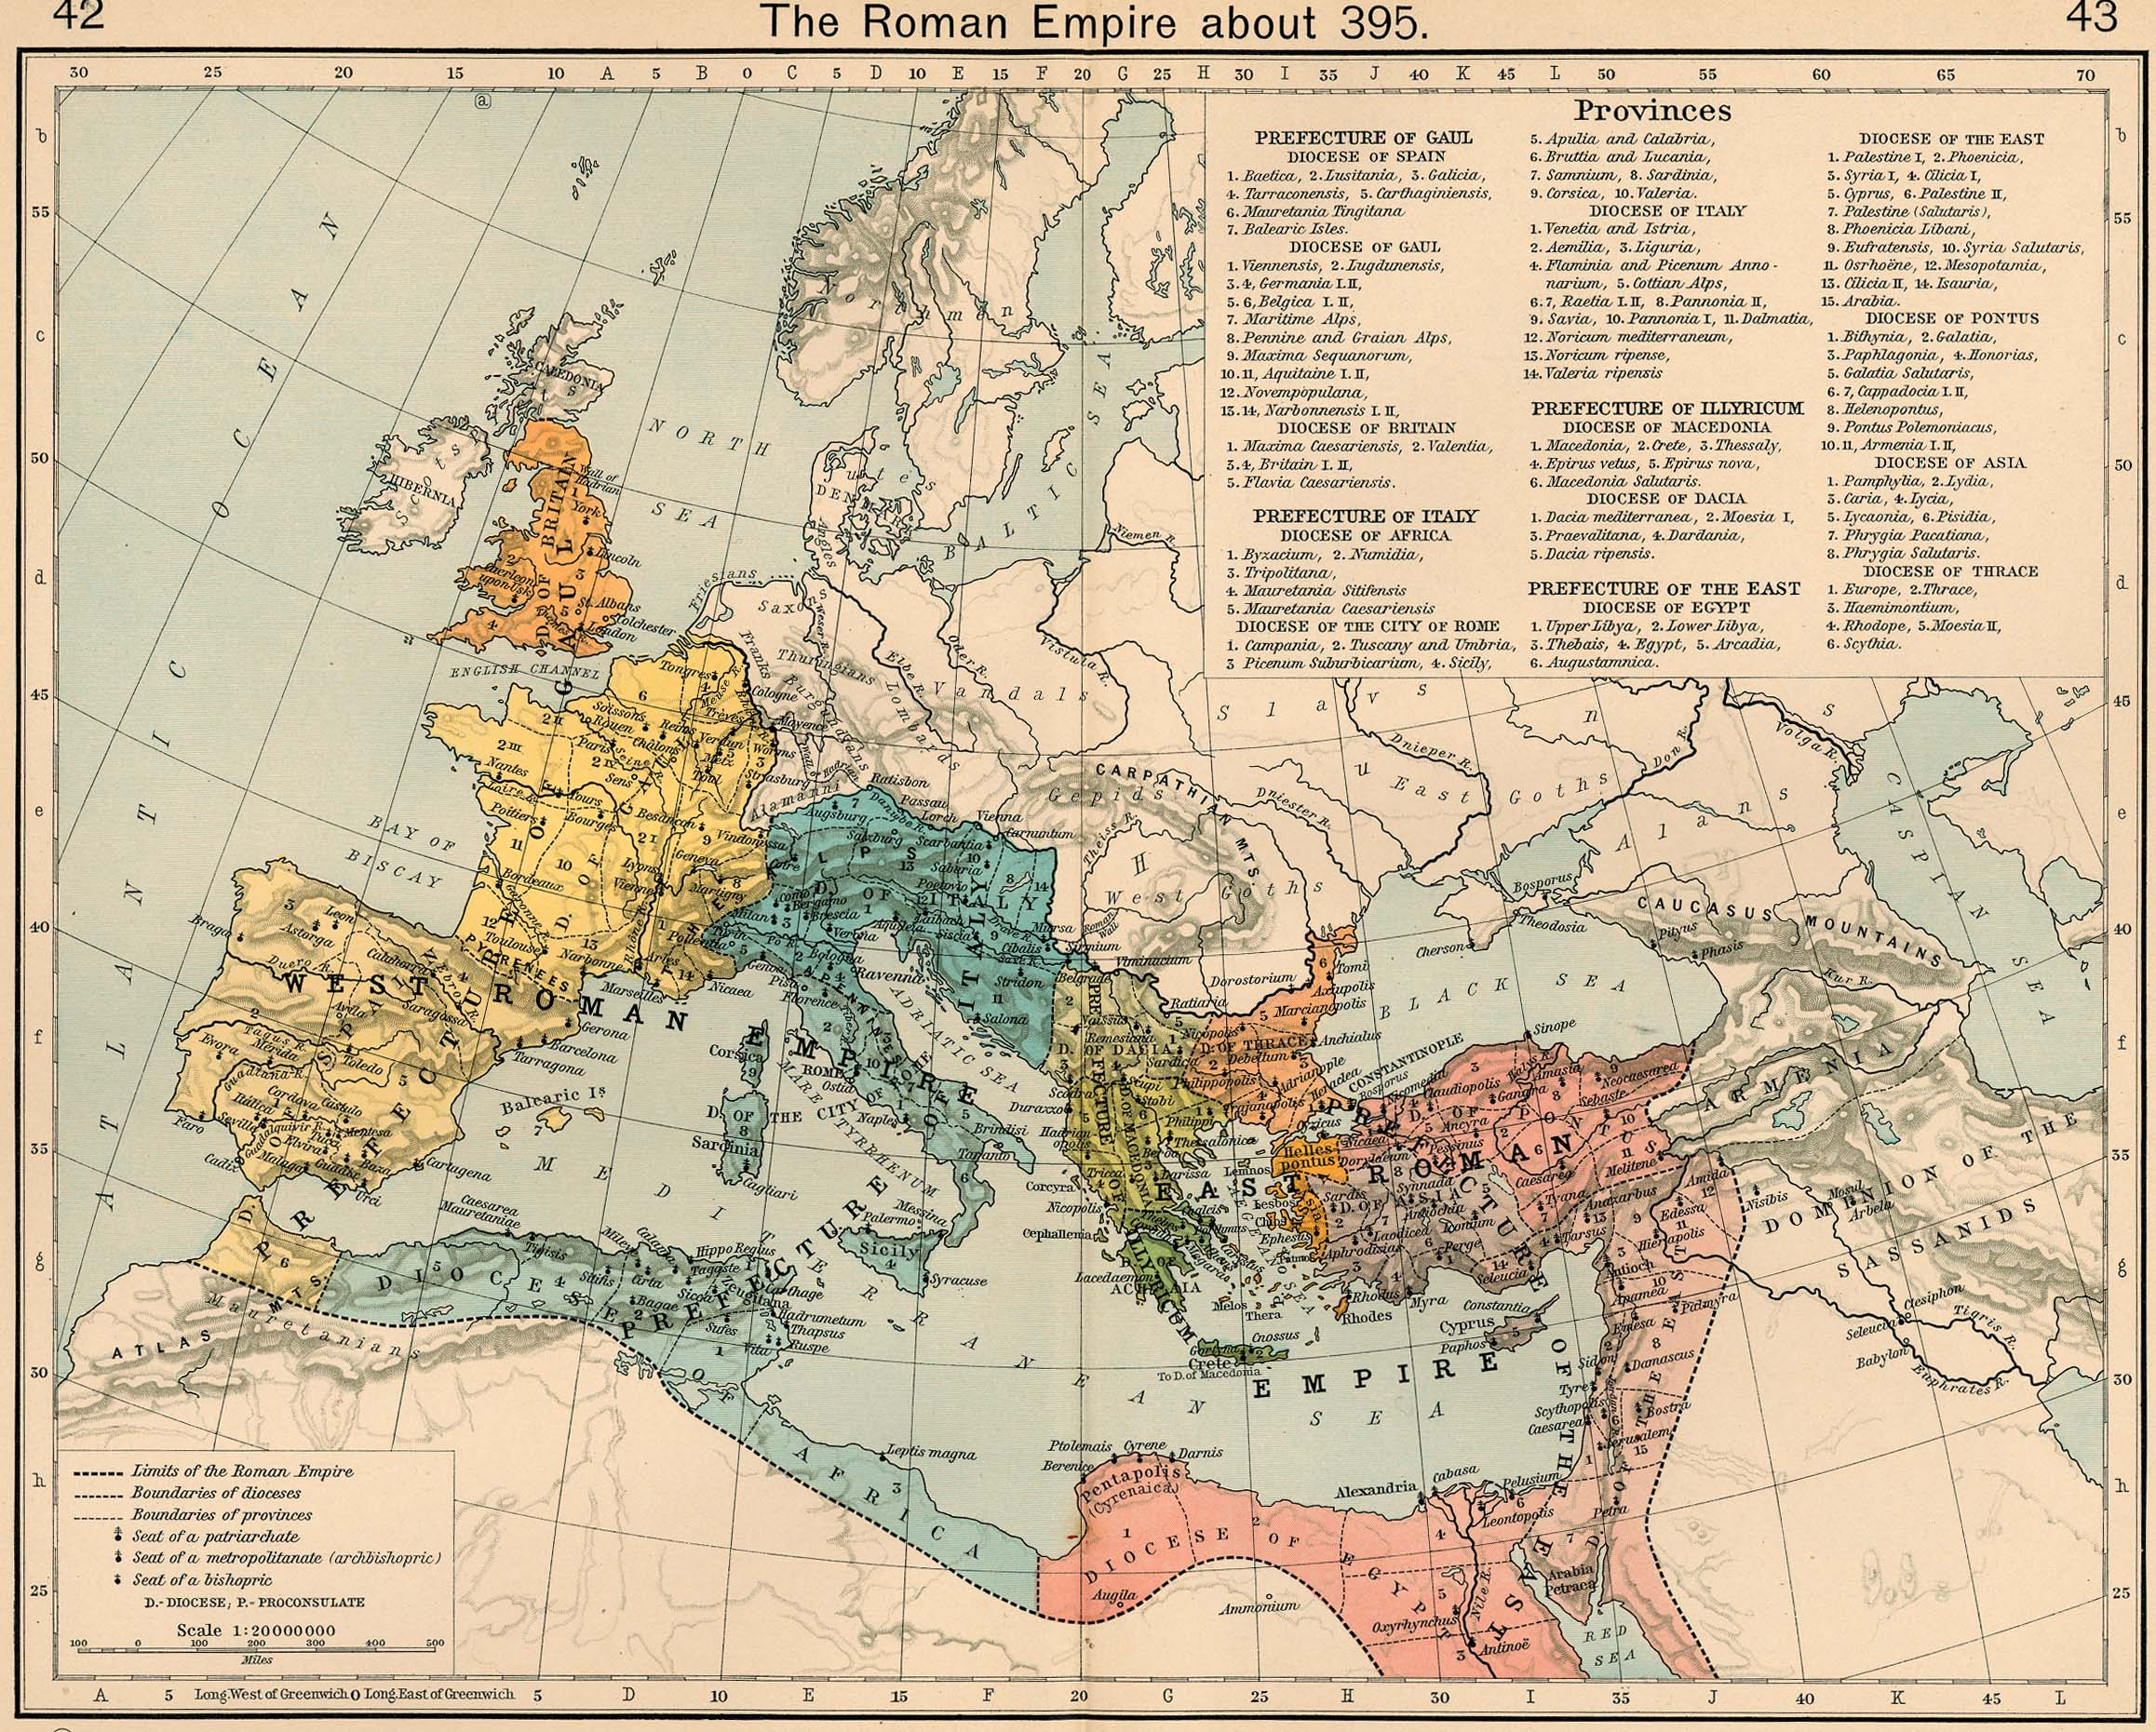 File:Roman empire 395.jpg - Wikipedia, the free encyclopedia